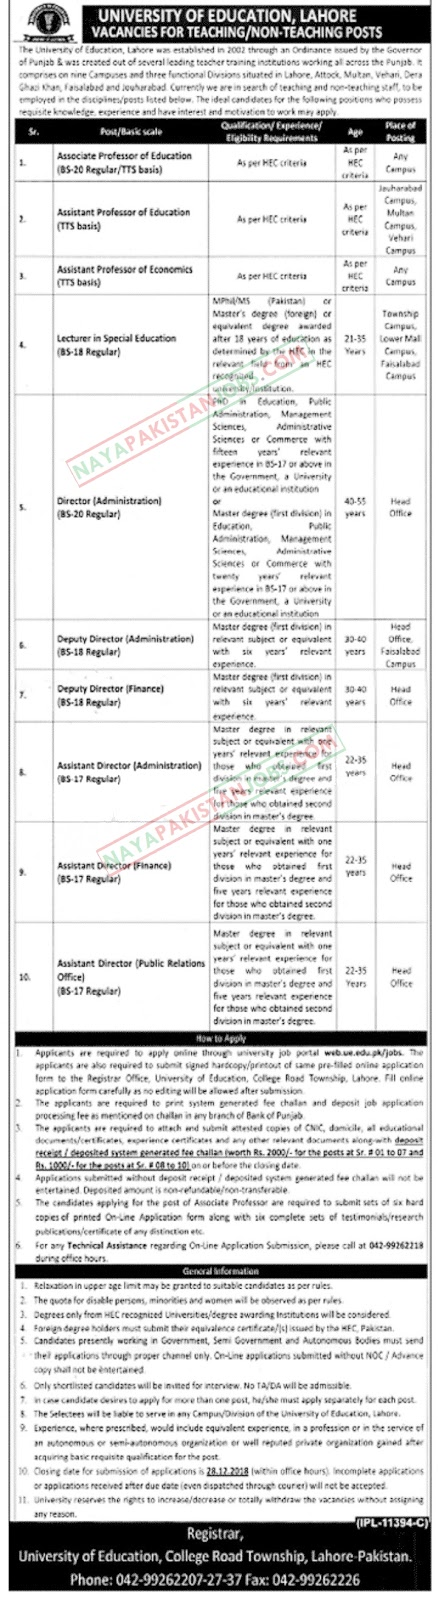 Latest Vacancies Announced in University Of Education Lahore 9 December 2018 - Naya Pakistan